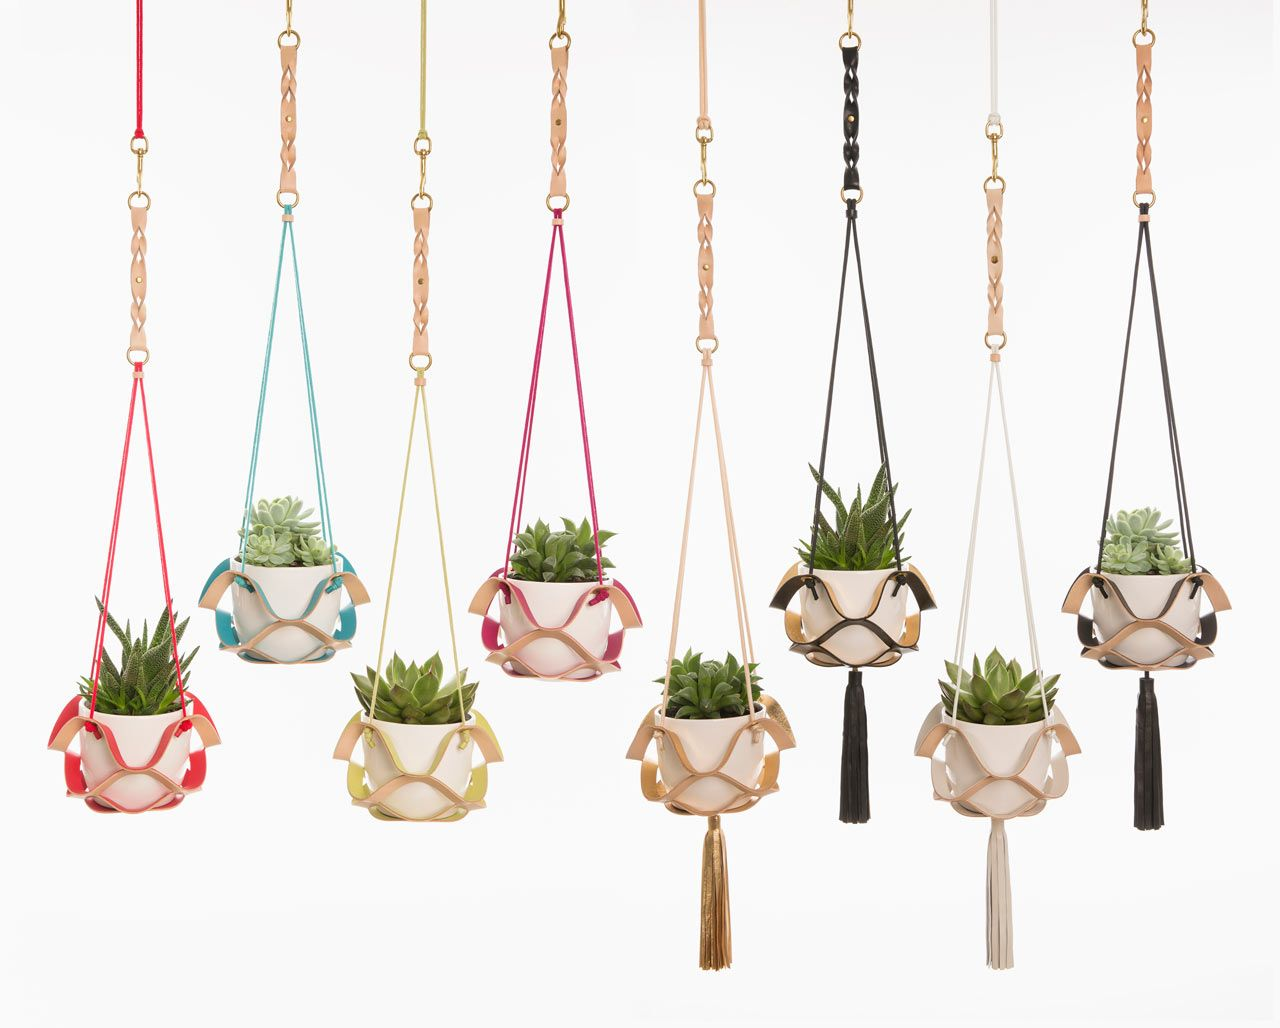 Handcrafted Plant Hangers by Kathryn Leah Payne